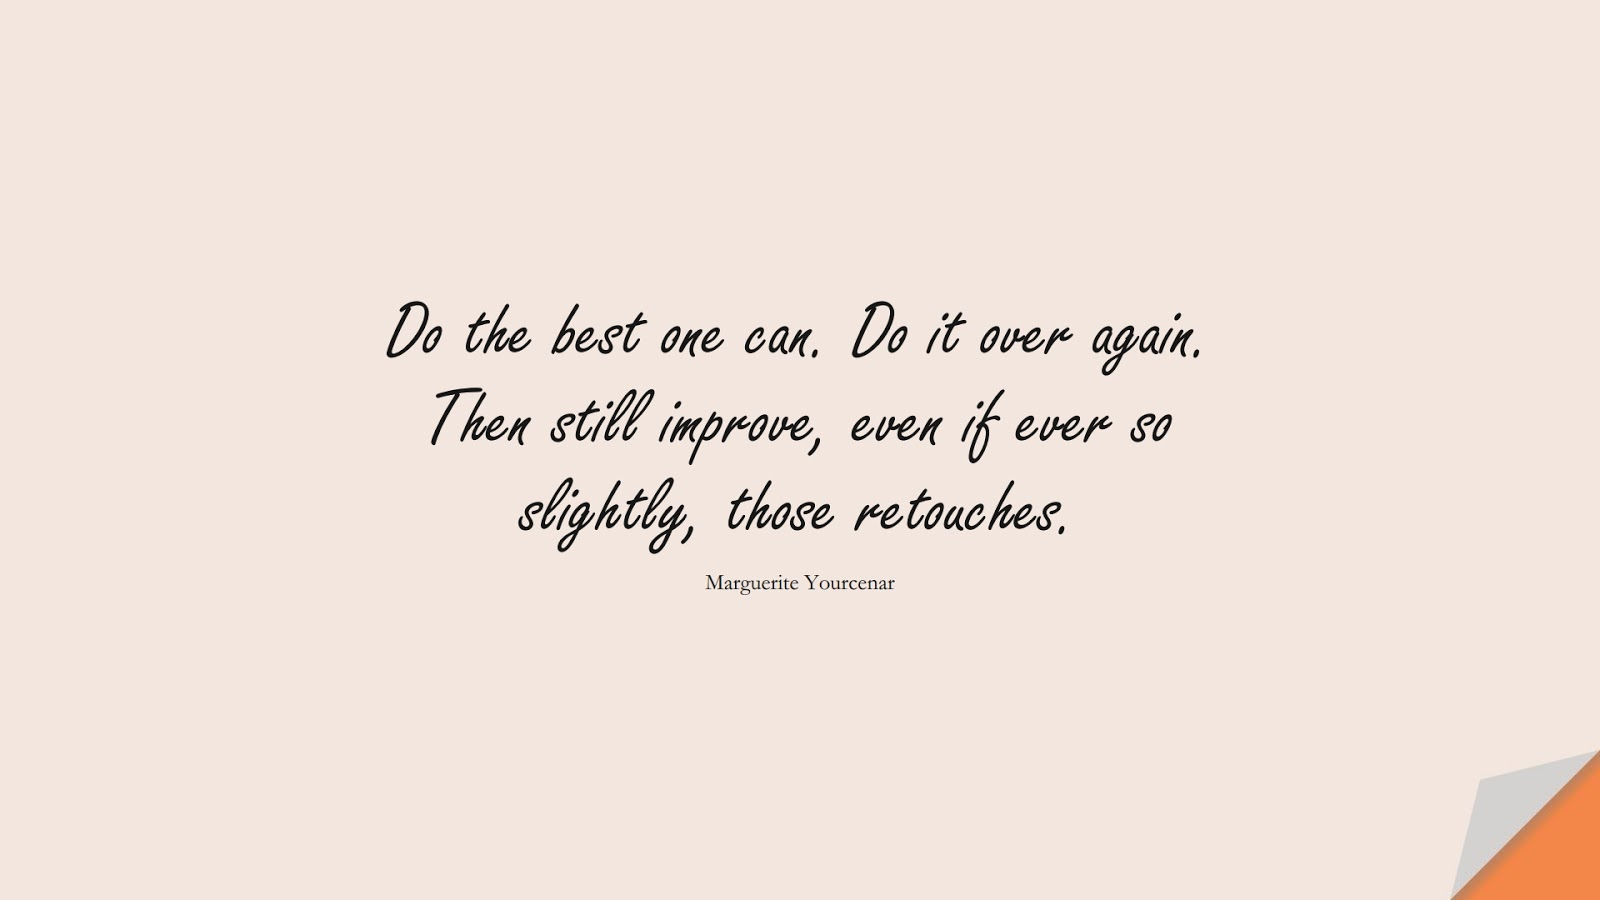 Do the best one can. Do it over again. Then still improve, even if ever so slightly, those retouches. (Marguerite Yourcenar);  #BestQuotes